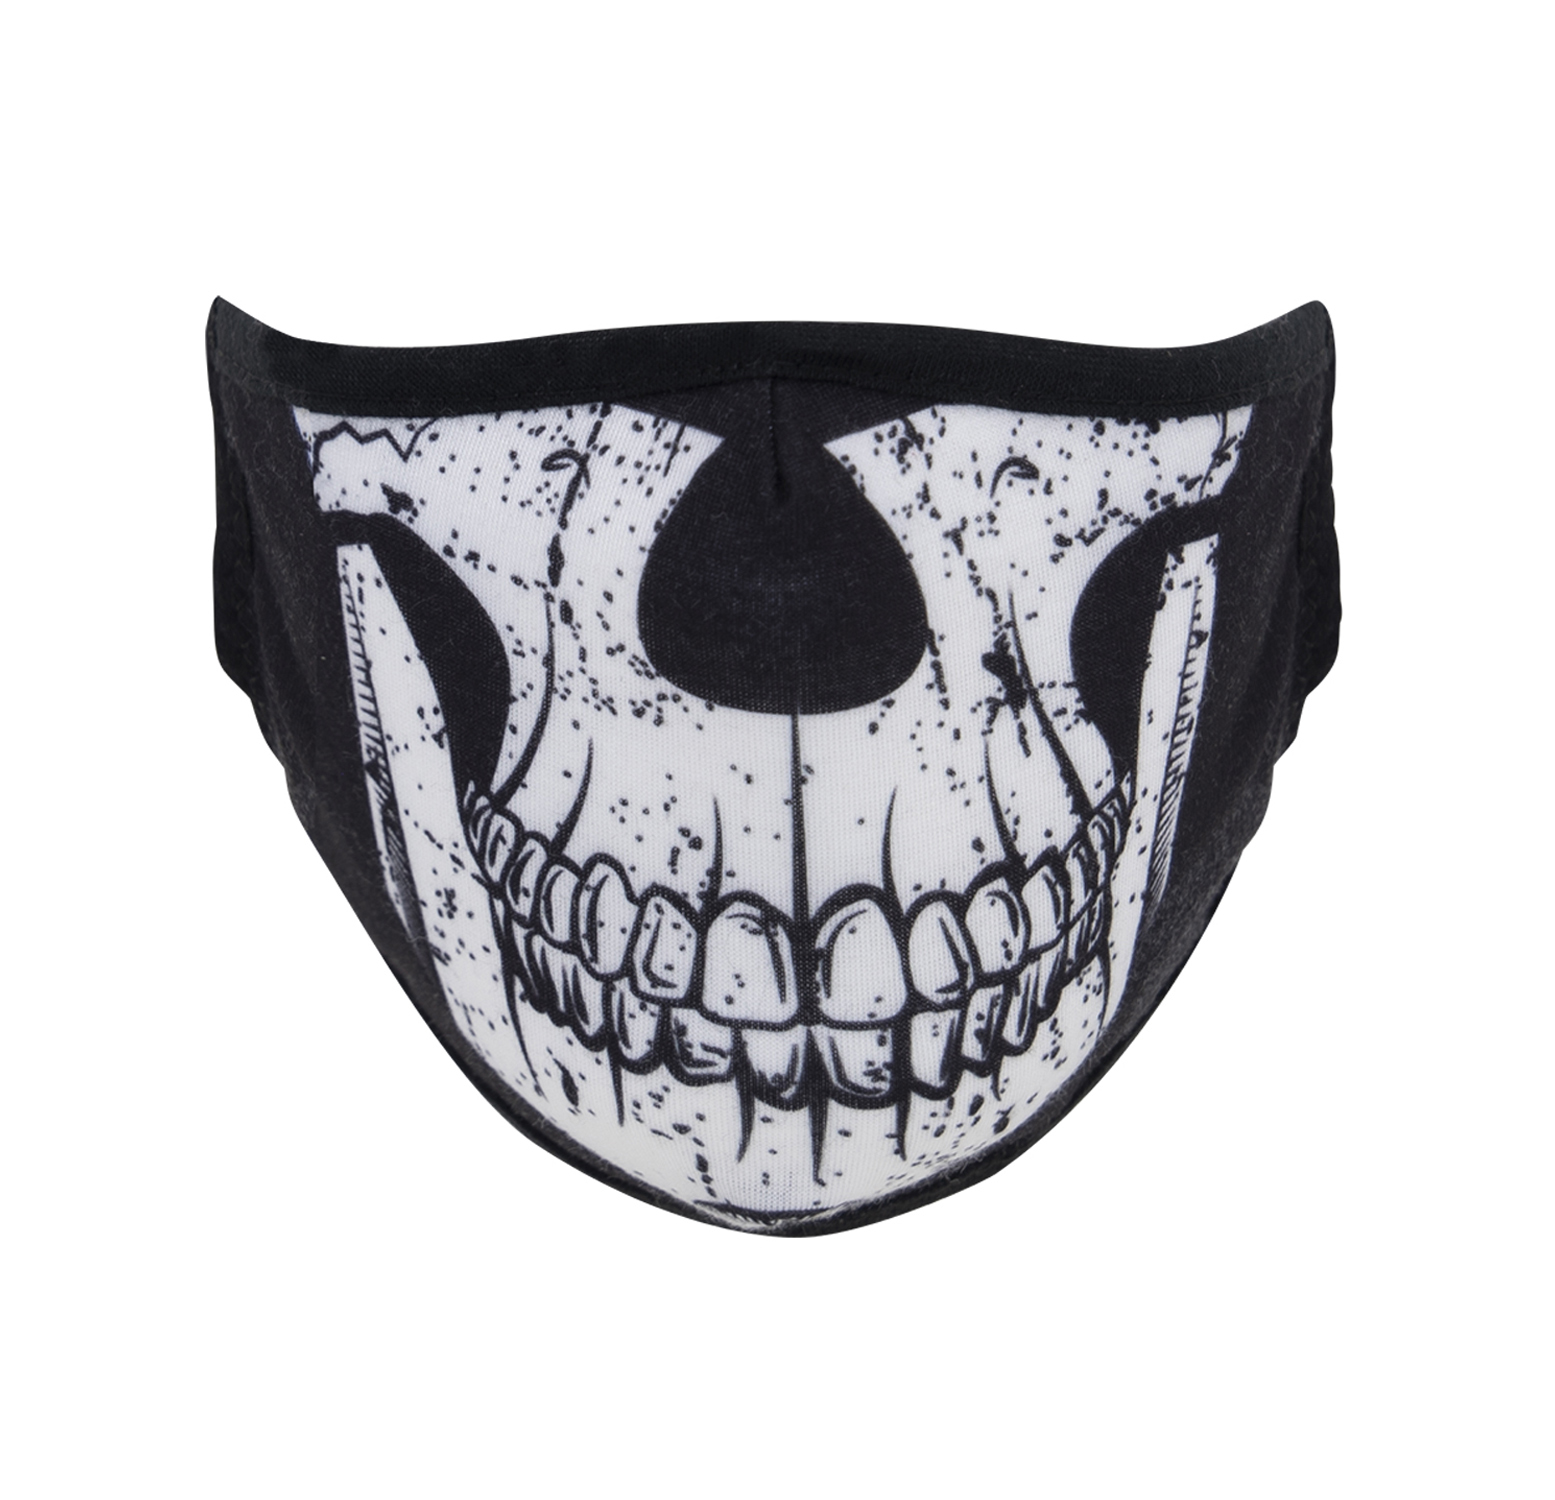 Half Skull Face Mask LRG/XLRG Black/White